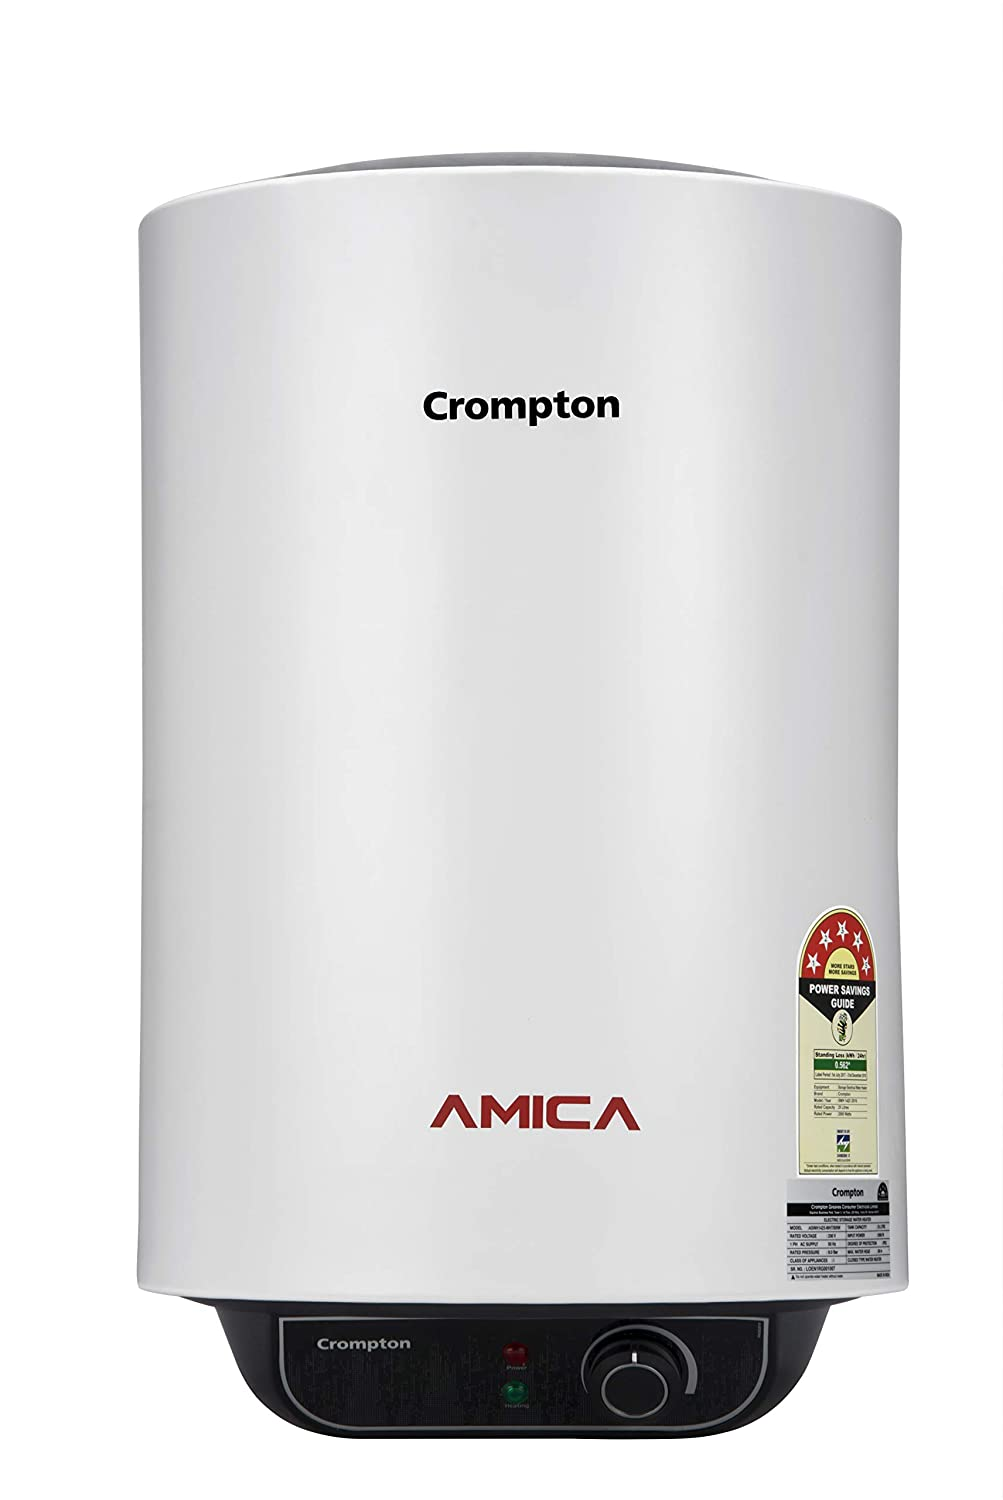 Crompton Amica ASWH-2025 25-Litre Storage Water Heater